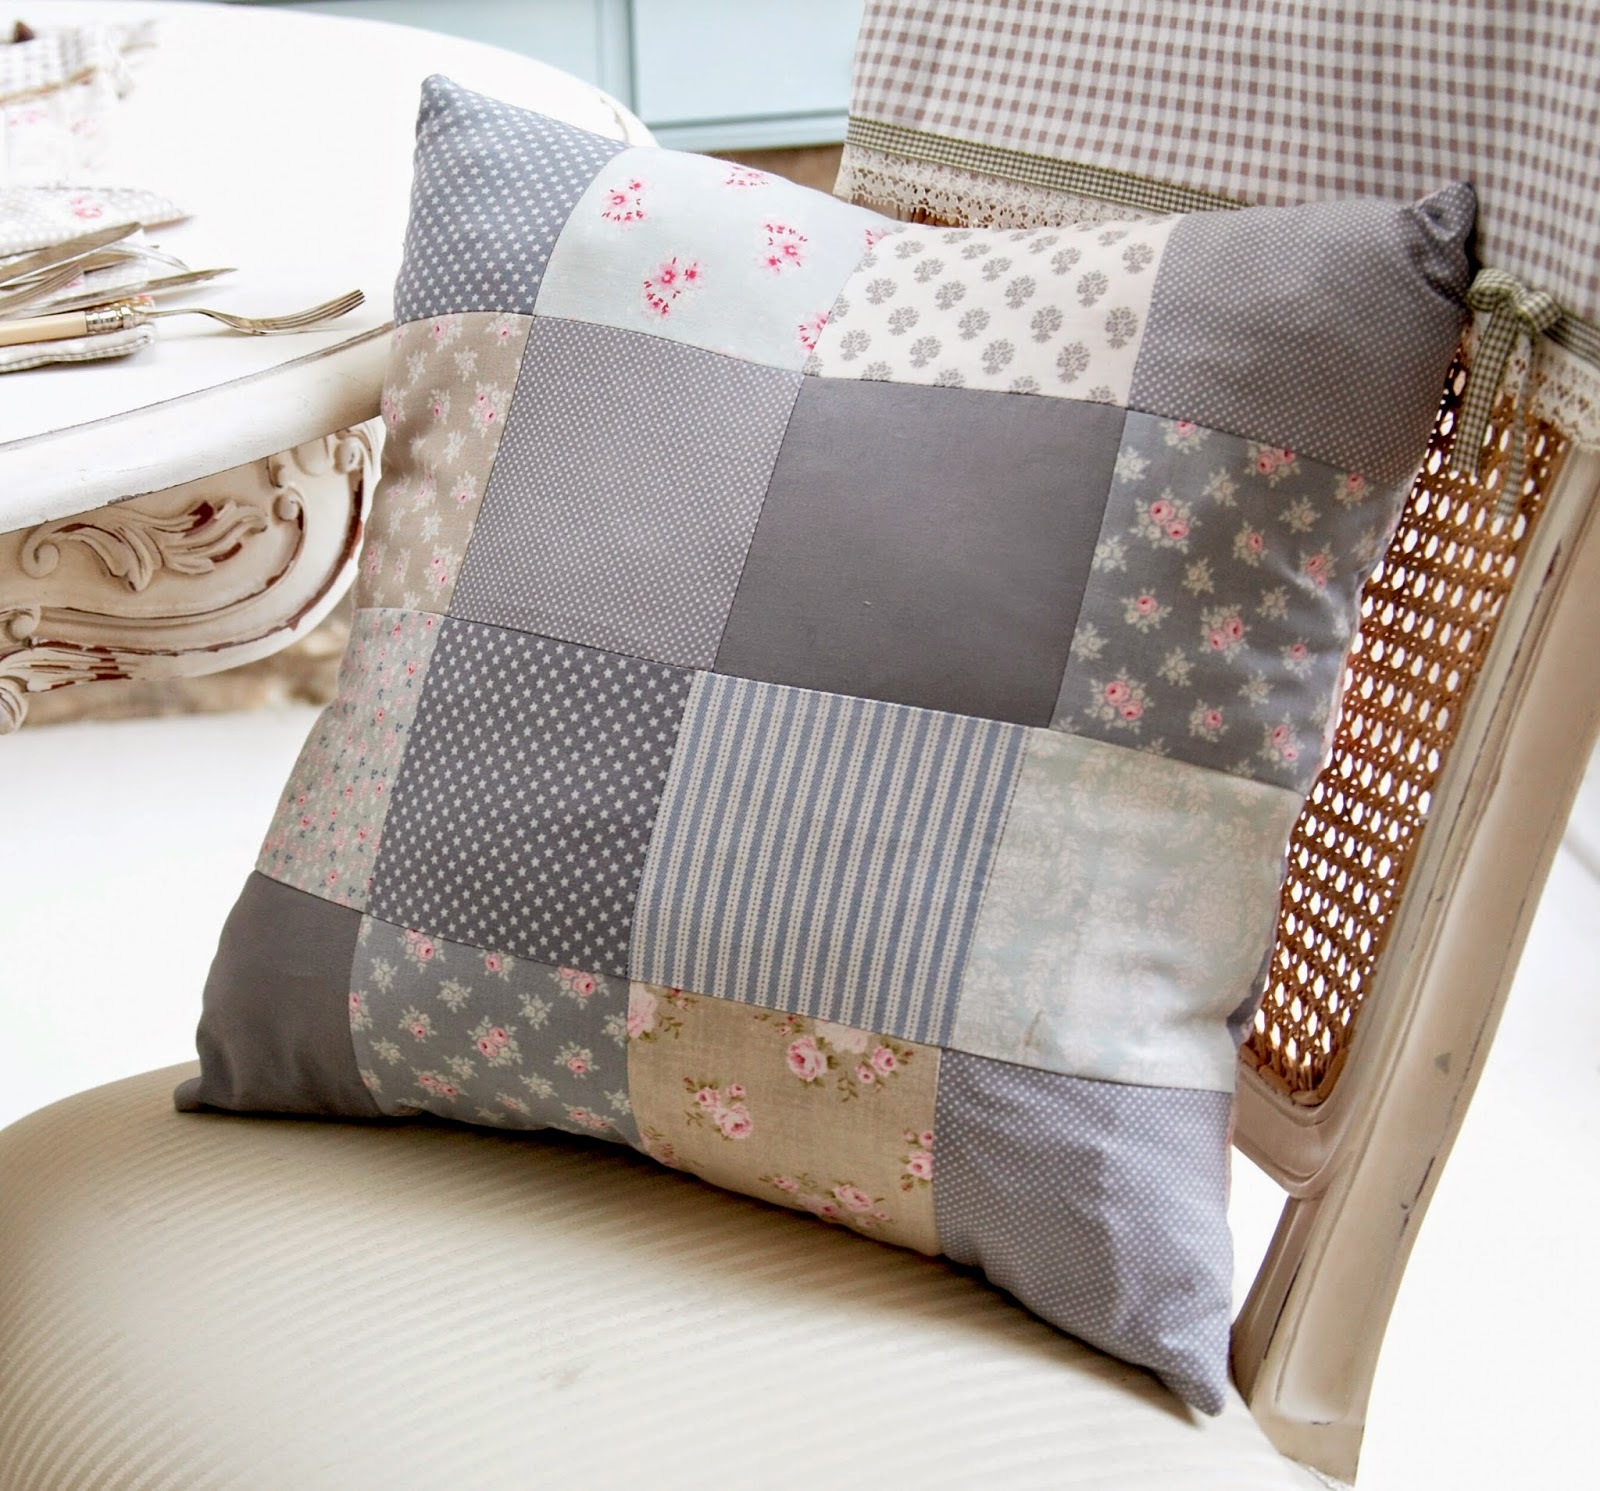 sew what by debbie shore patchwork cushion cover project. Black Bedroom Furniture Sets. Home Design Ideas